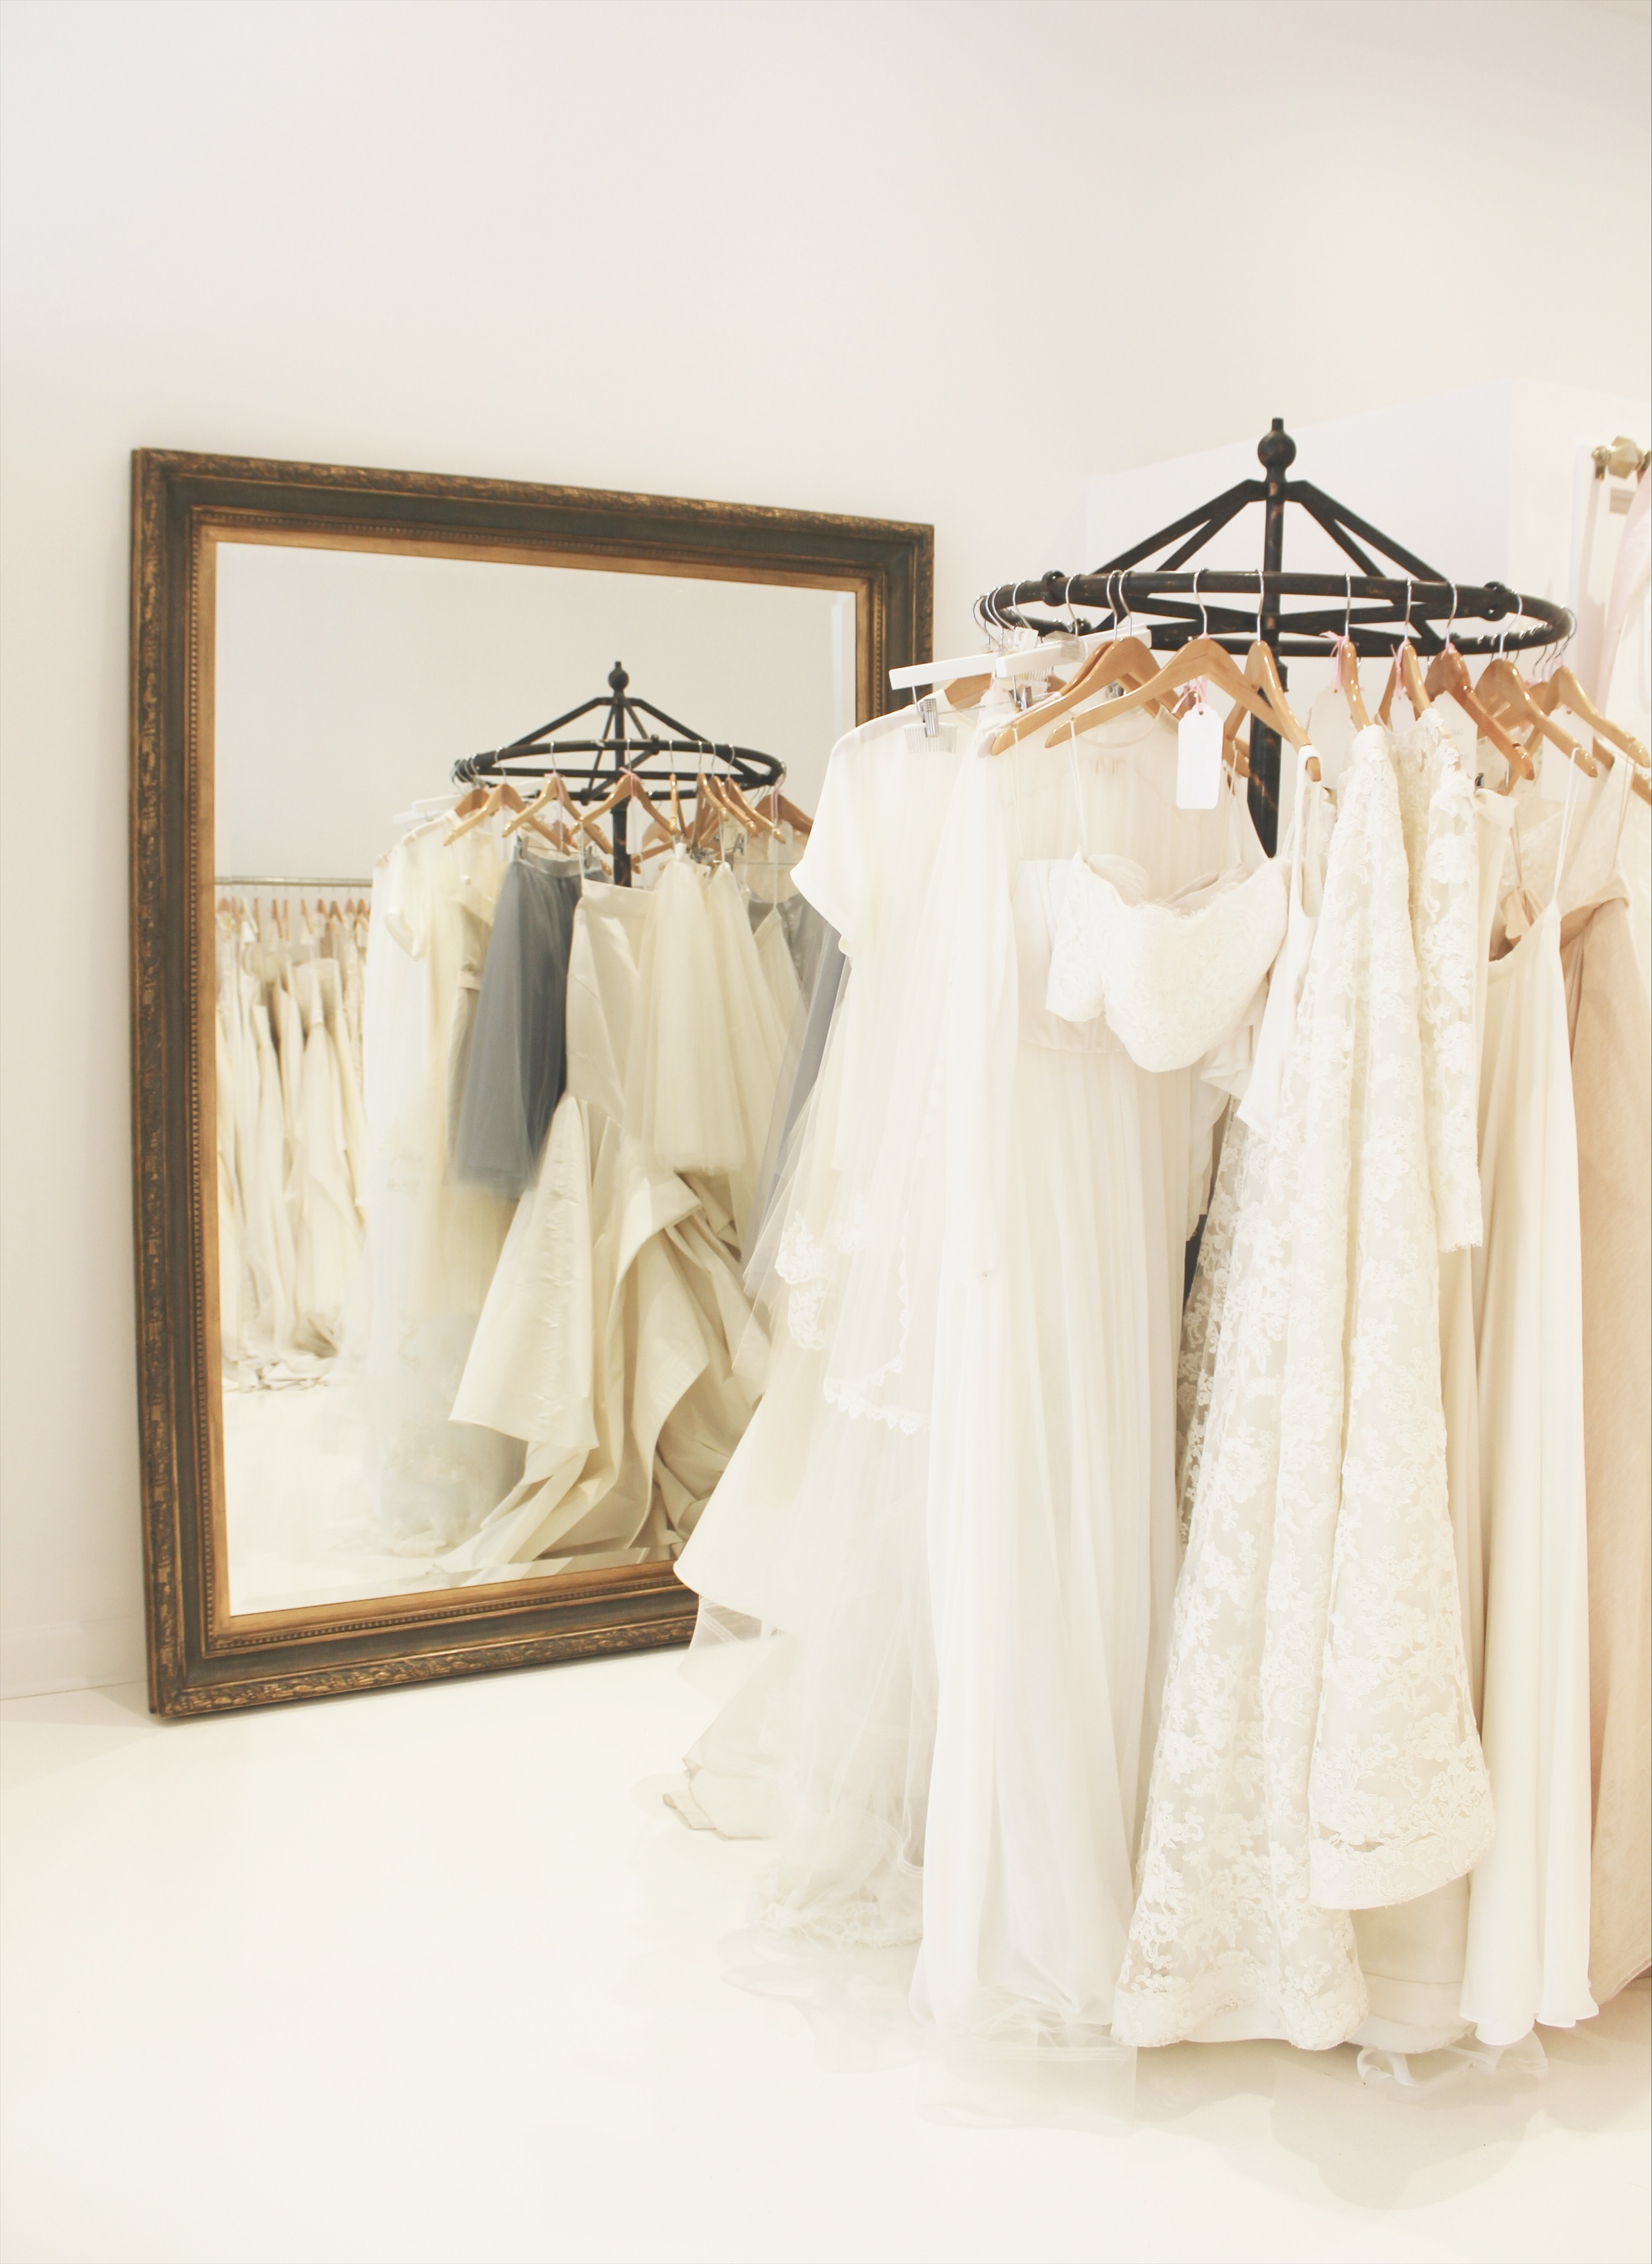 When searching for the perfect wedding dress it can be so tricky deciding if a style trend will still be beautiful years down the road